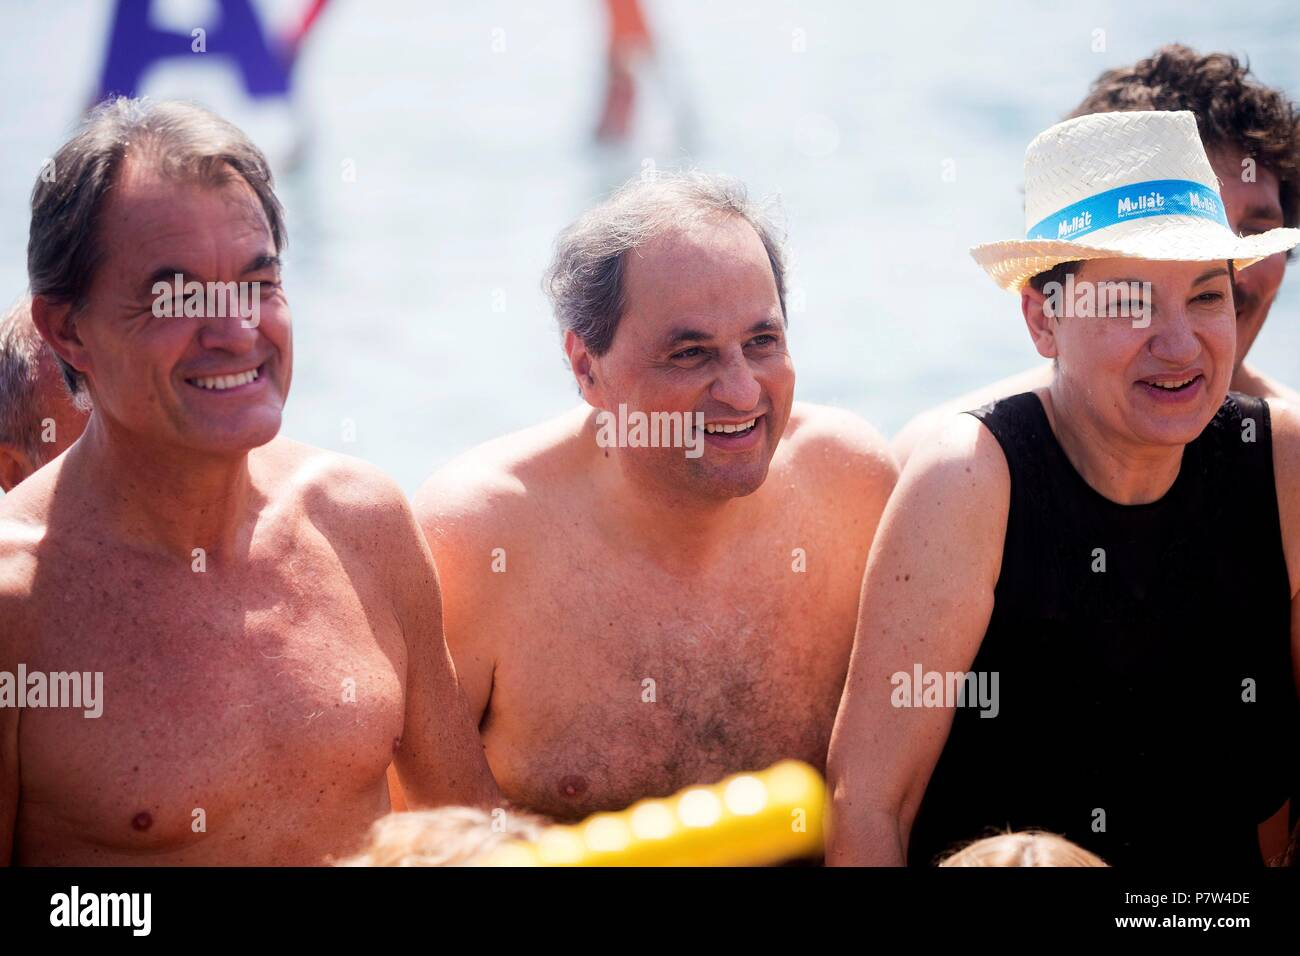 Barcelona, Spain. 08th July, 2018. Catalonian regional president, Quim Torra (C), former Catalonian regional president Artur Mas (L), and actress Lloll Bertran (R) attend a charity event for multiple sclerosis in Barcelona, Spain, 08 July 2018. Credit: Quique Garcia/EFE/Alamy Live News - Stock Image